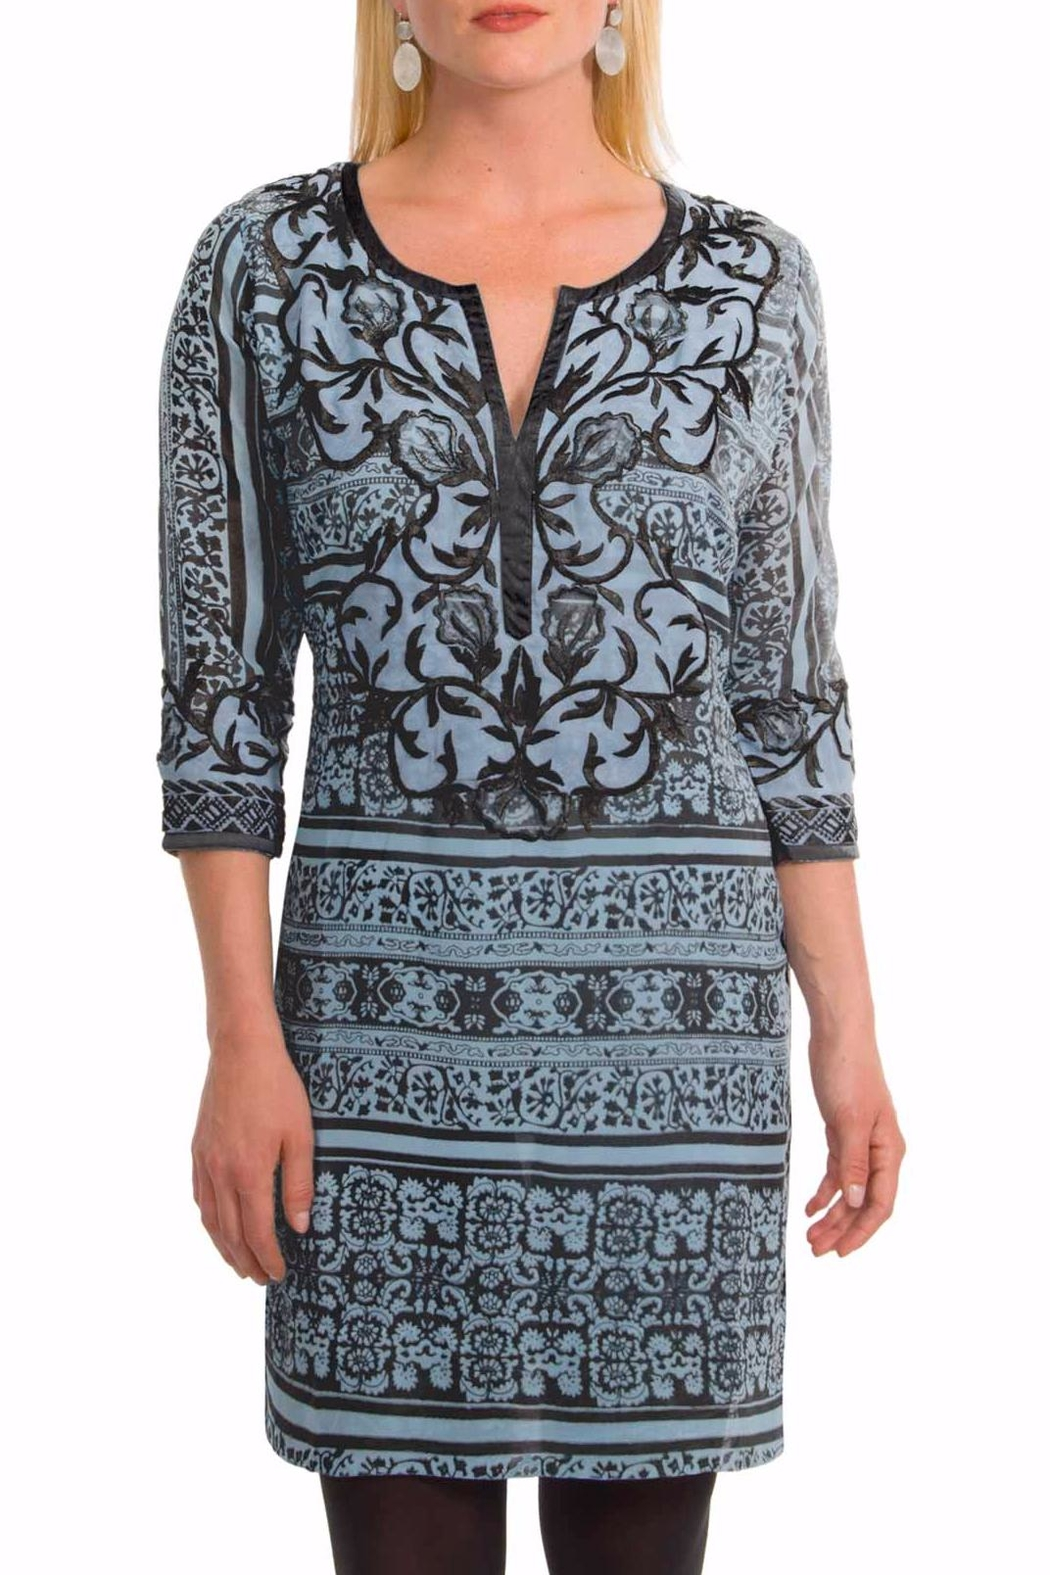 Gretchen Scott Georgette Embroidered Dress - Front Cropped Image